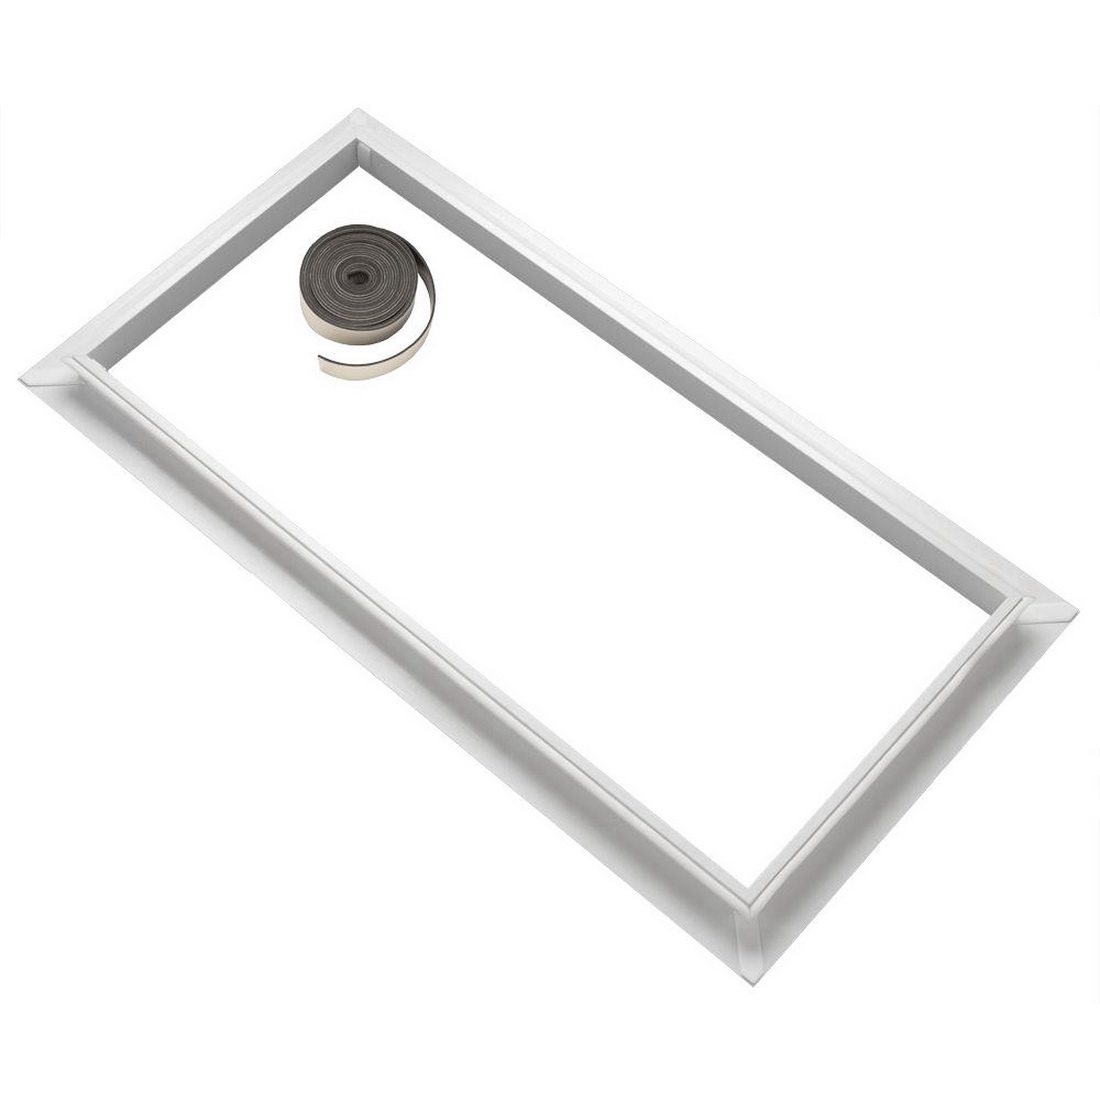 Skylight Accessory Tray To Fit Blind to FCM White ZZZ 199 2234